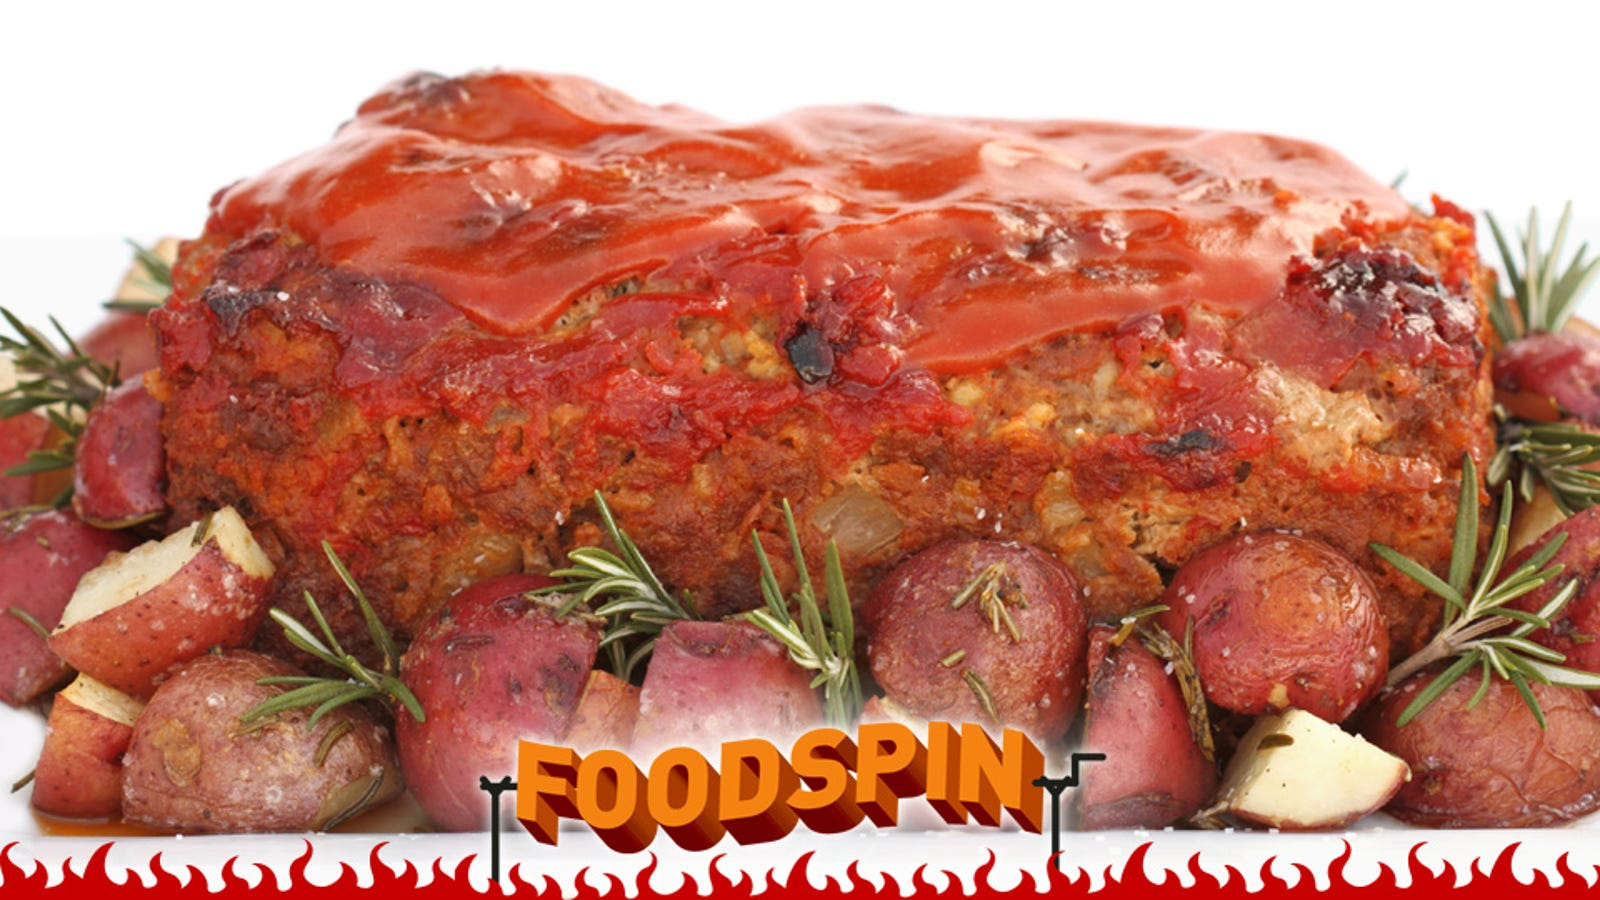 How To Make A Meatloaf That Doesn't Suck: A Guide For